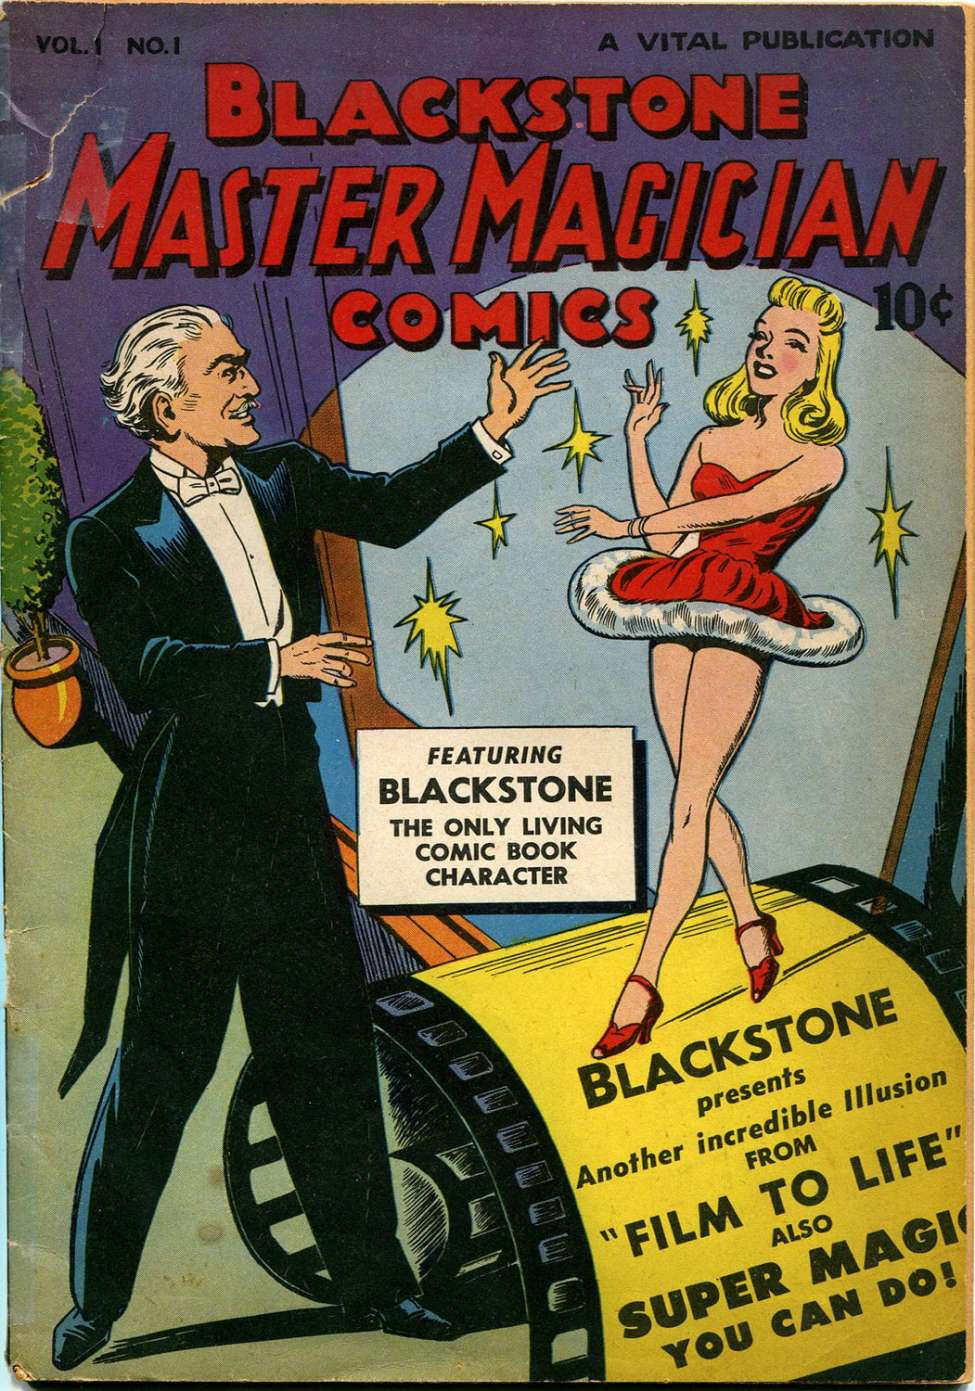 Comic Book Cover For Blackstone Master Magician Comics #1